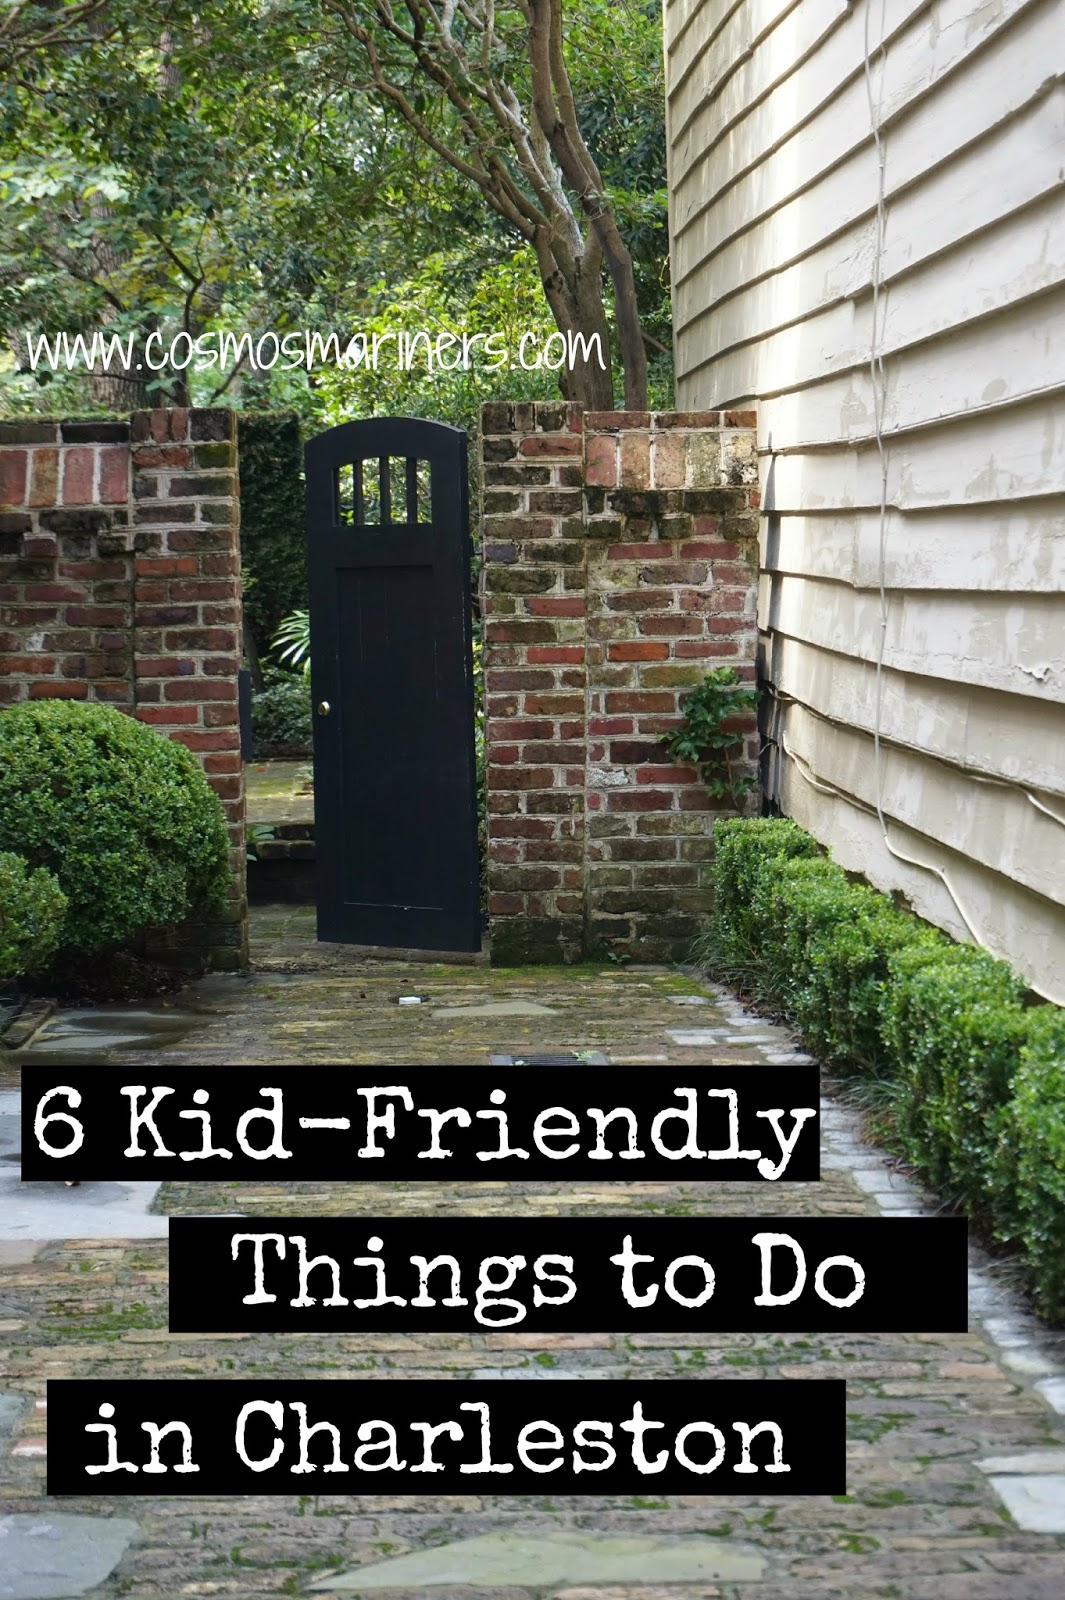 6 kid friendly things to do in charleston cosmos mariners for Things to charleston sc